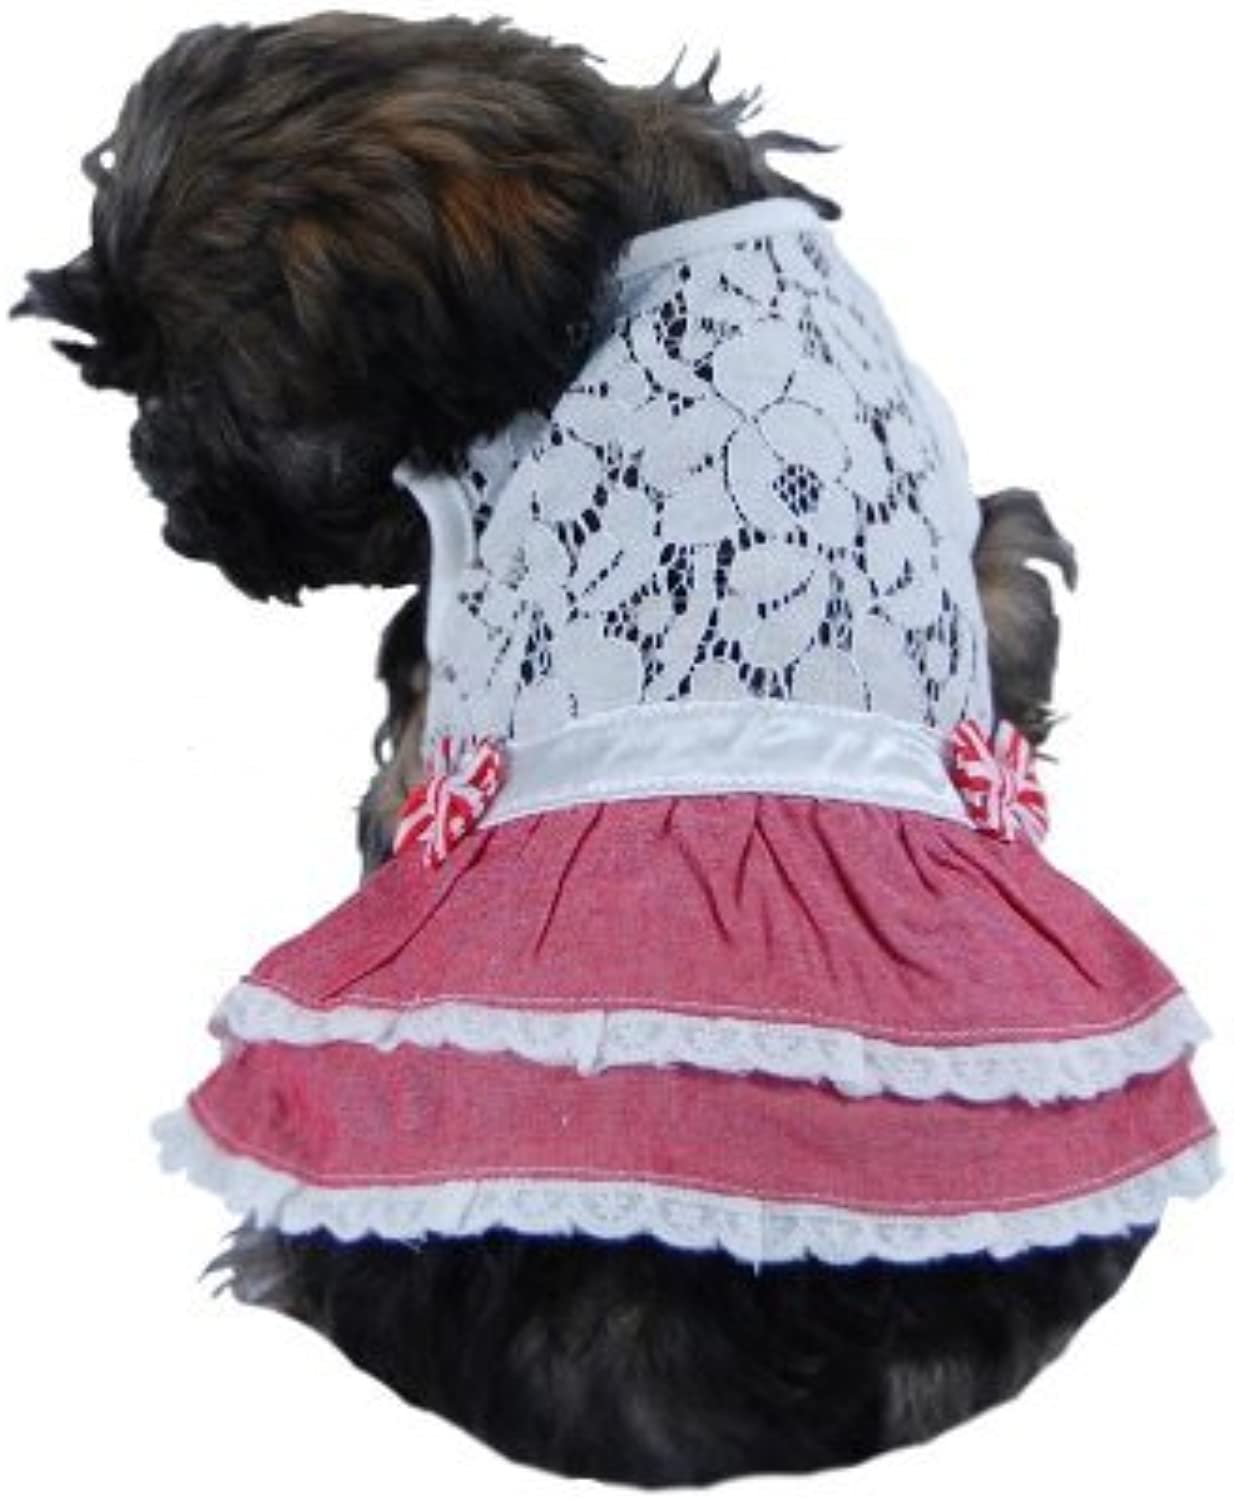 Anima AN13304M Lace Top with Bow Skirt Pet Clothes, Medium, White Red